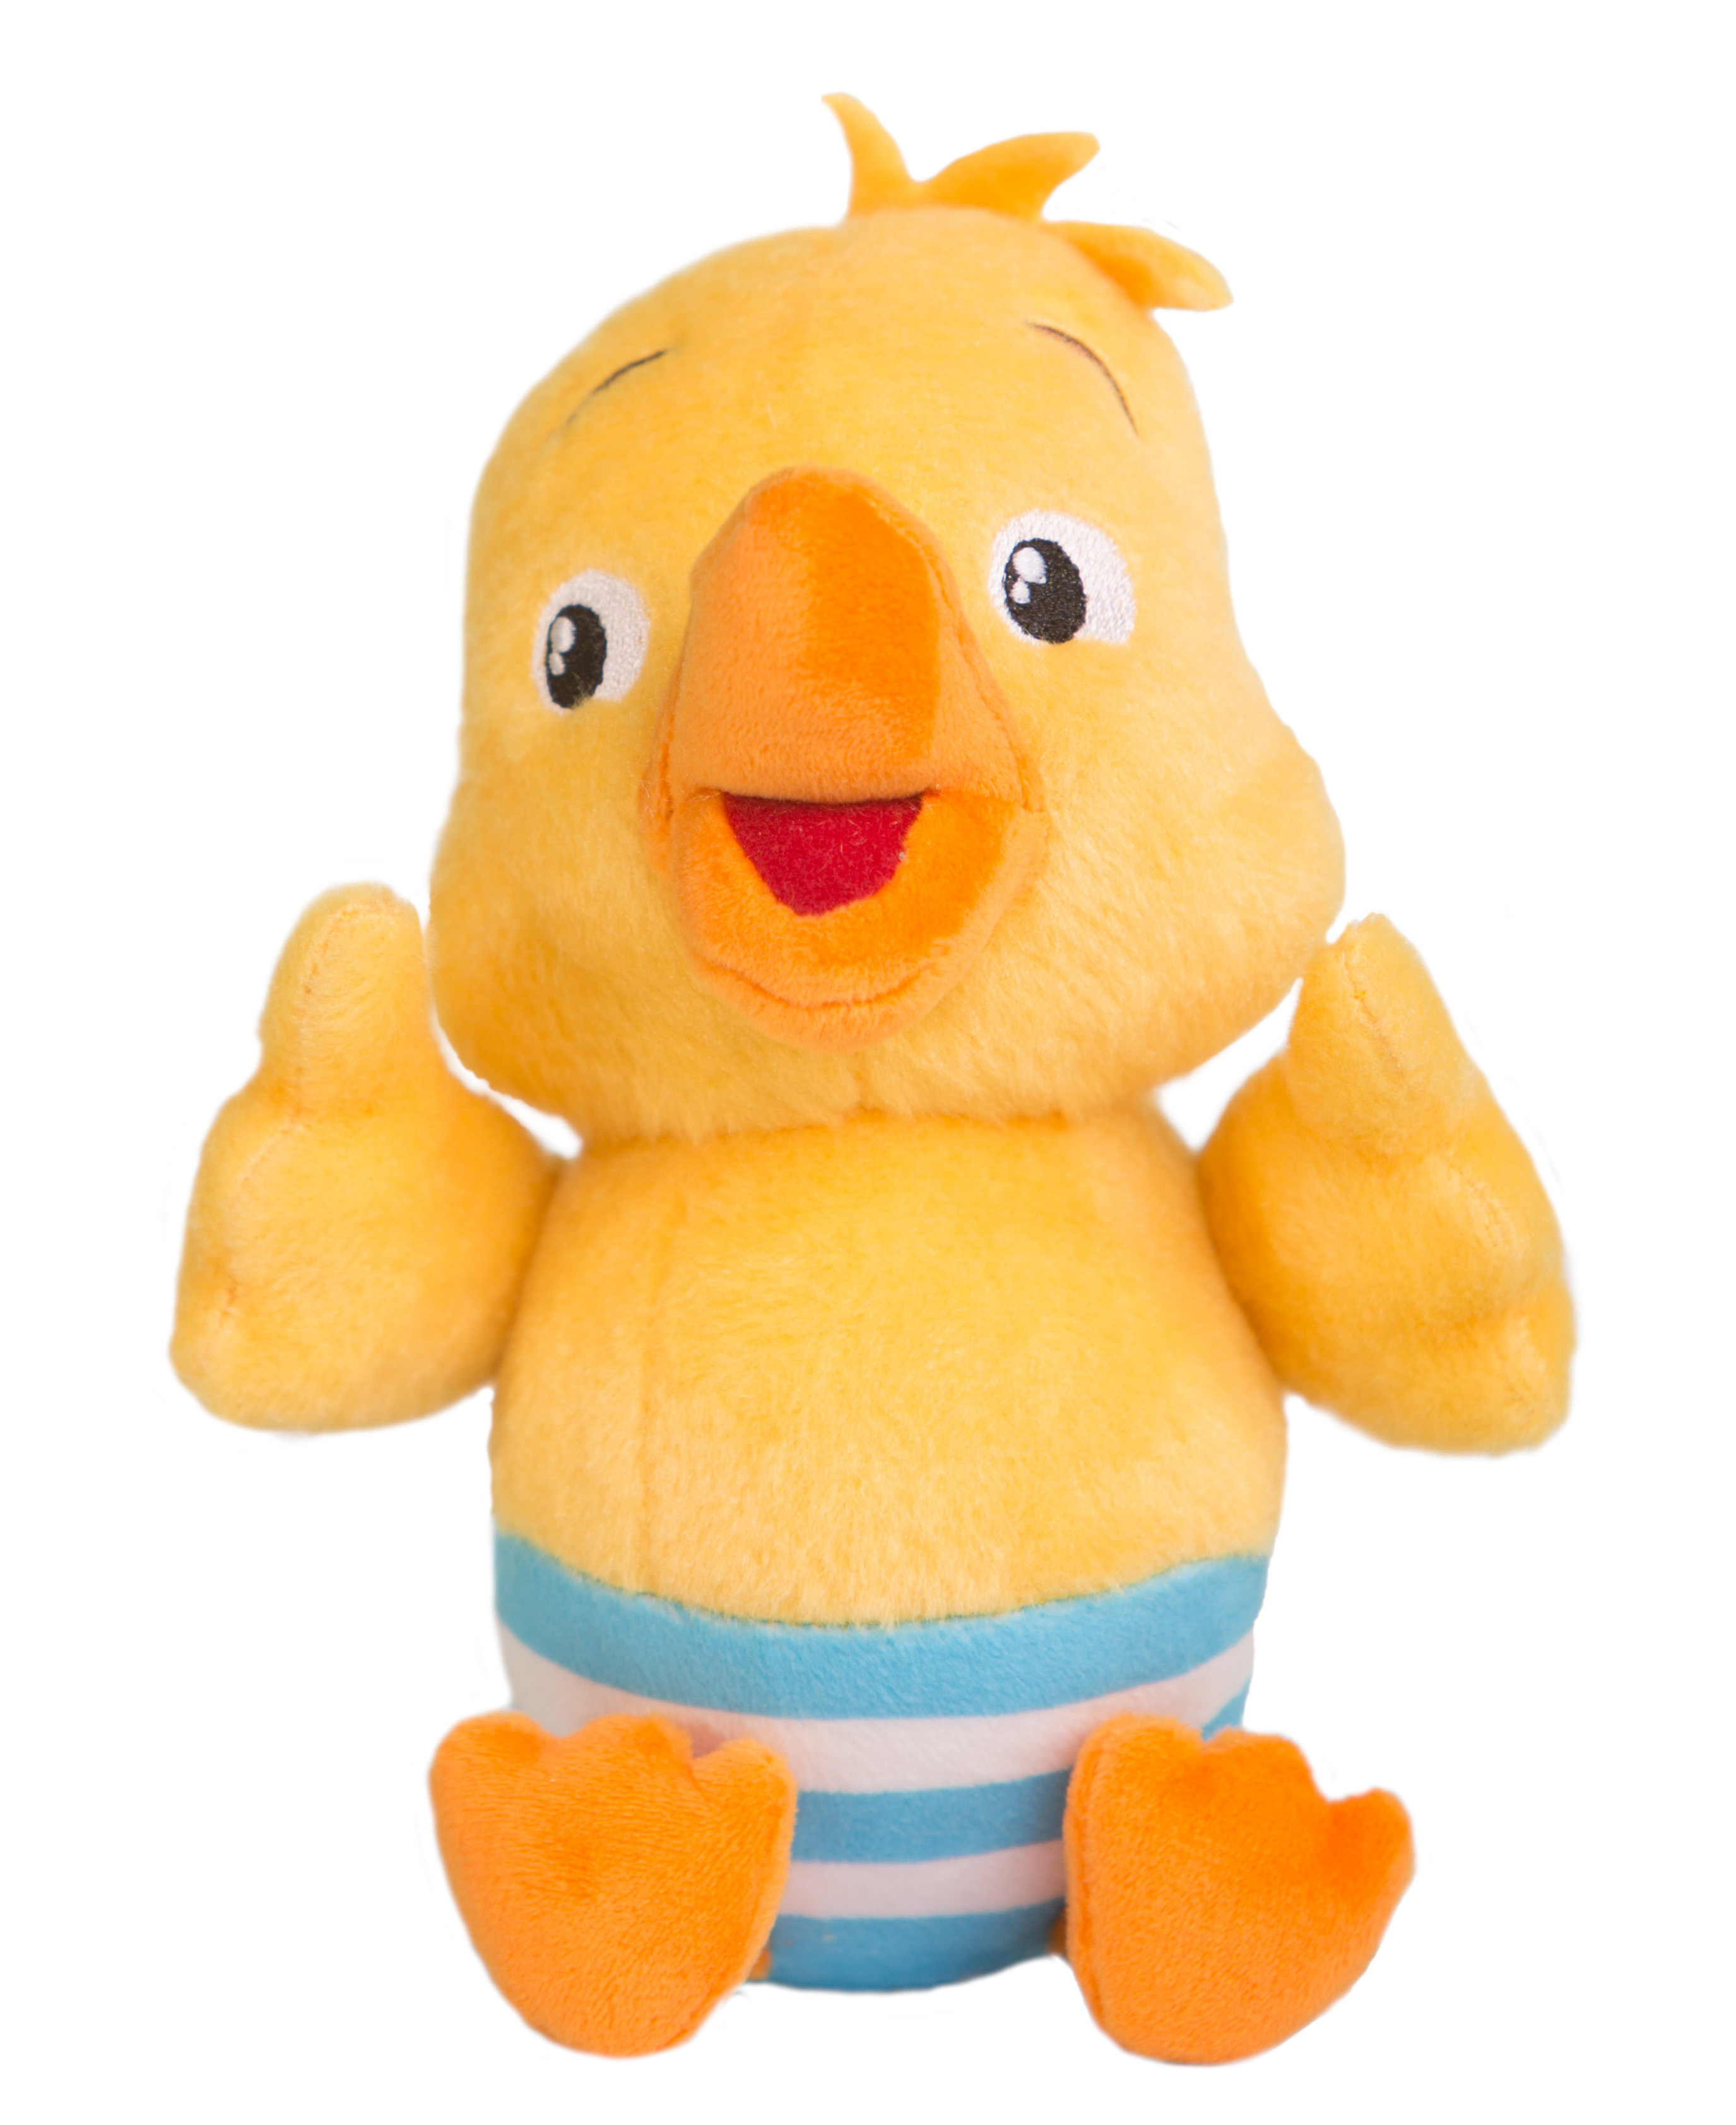 Cuddly 'Puddle the Duck' Toy